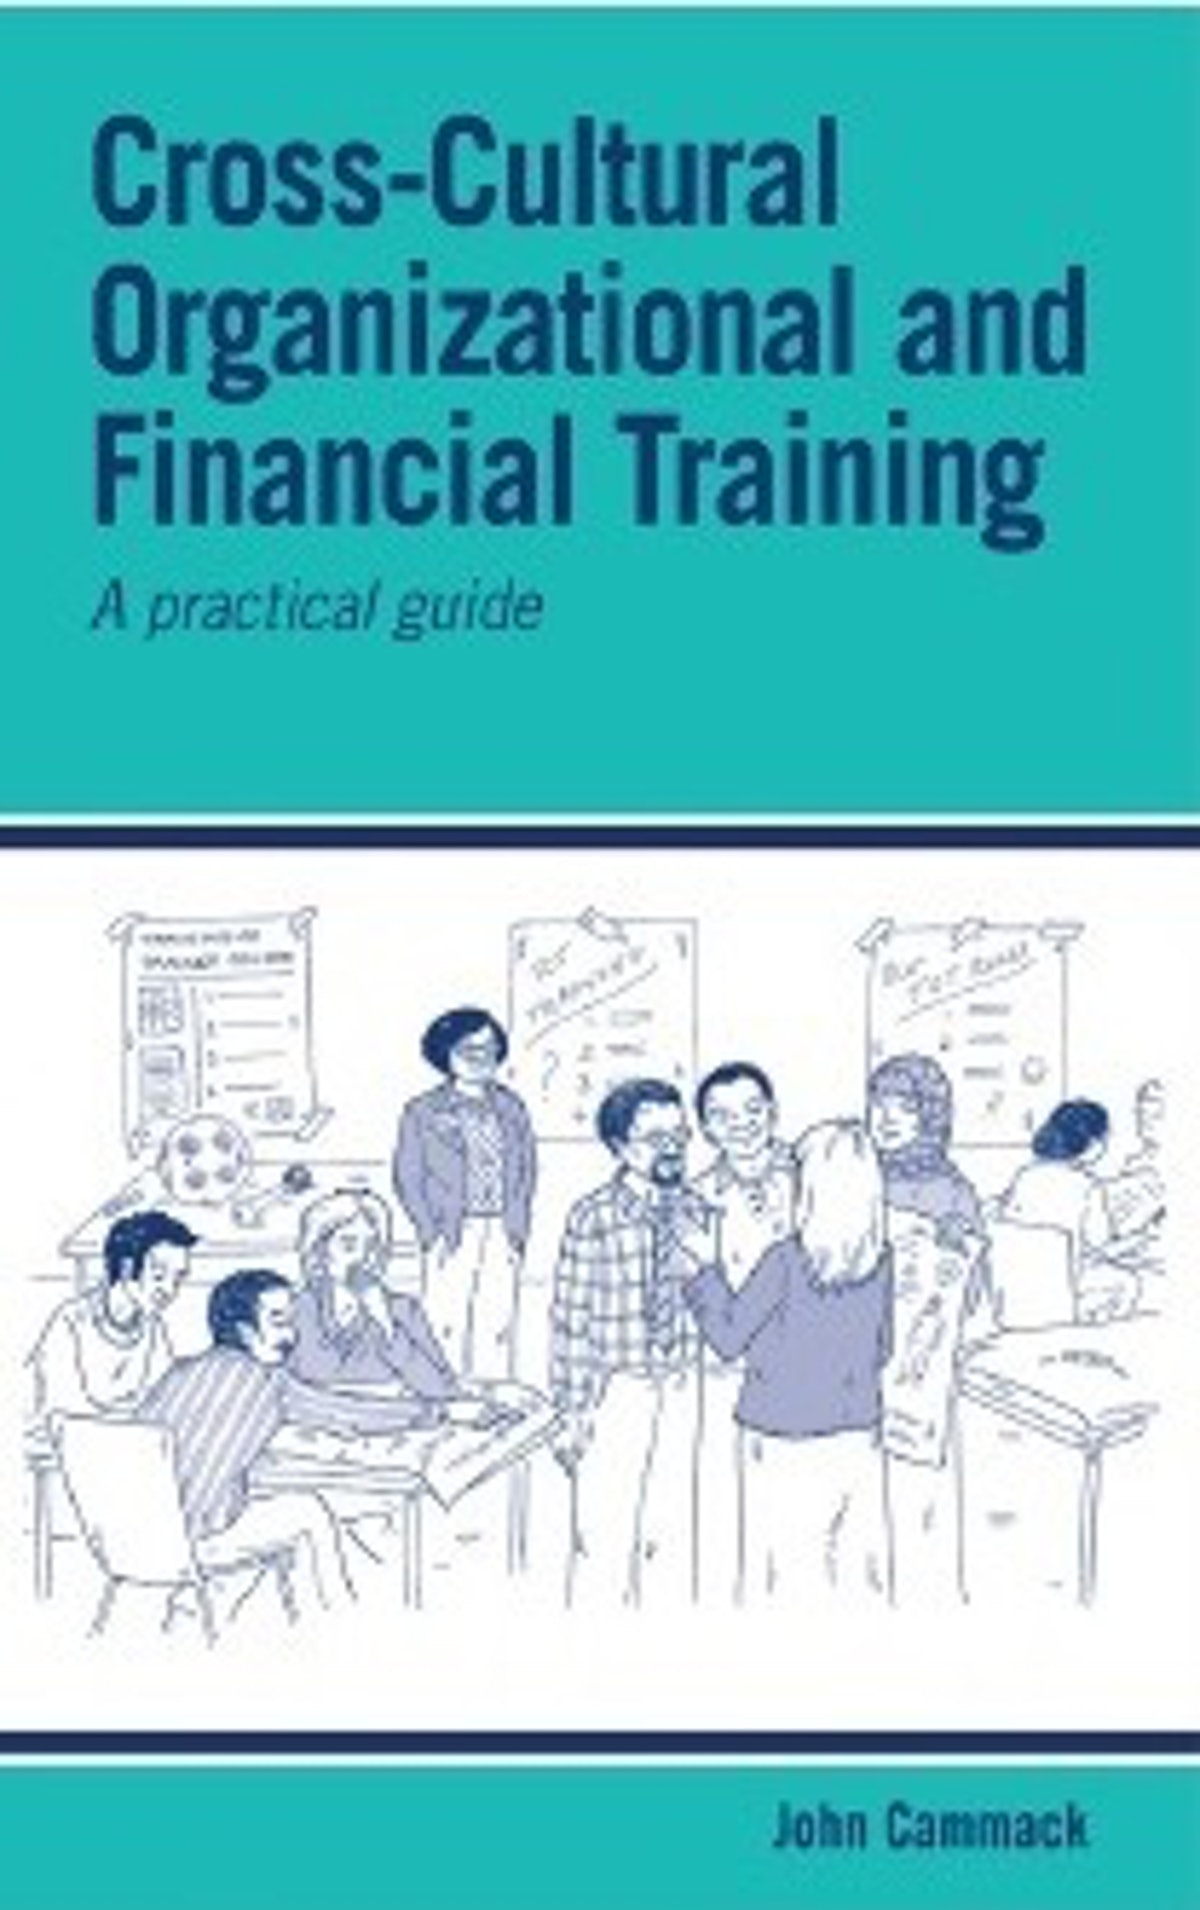 NEW: Cross-Cultural Organizational and Financial Training